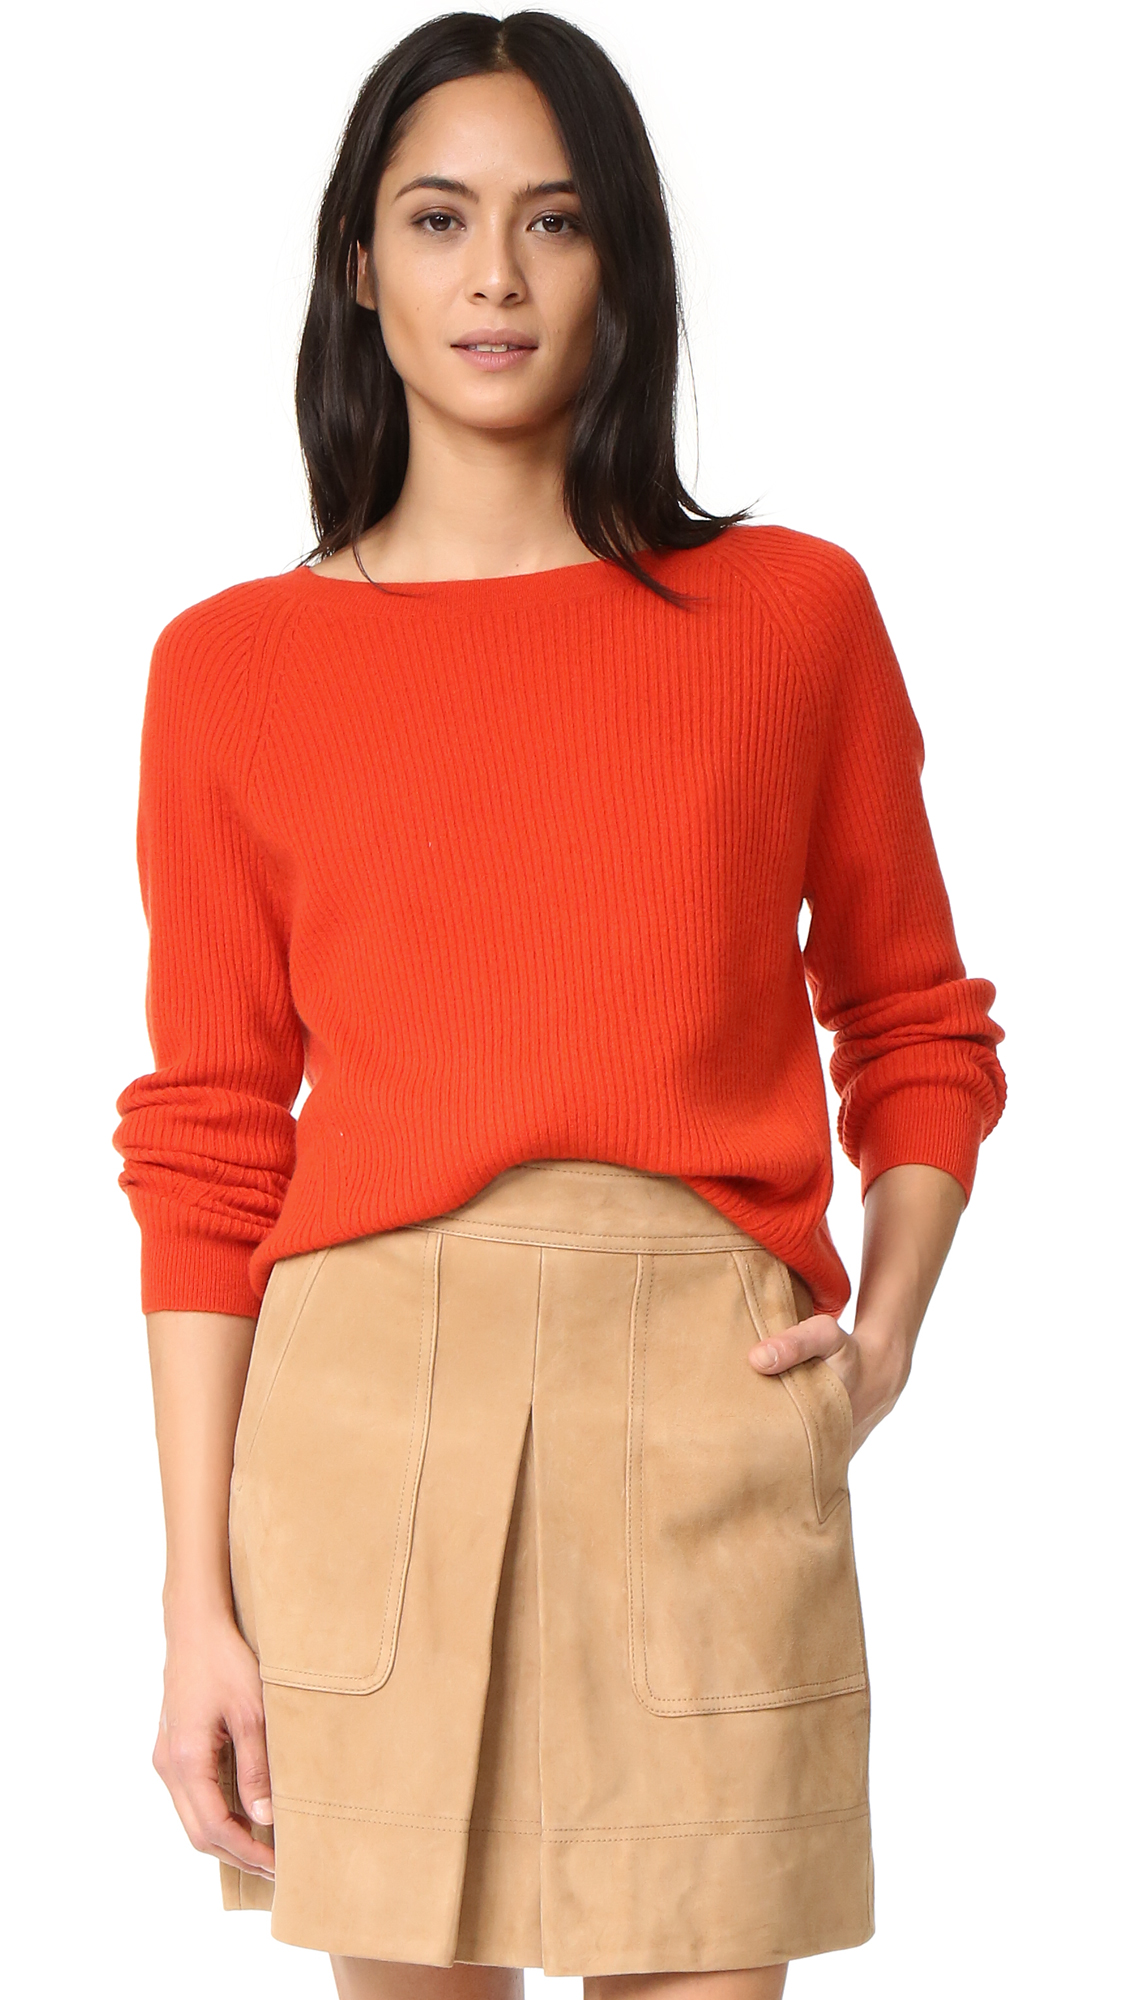 Vince Ribbed Cashmere Sweater - Orange Sunrise at Shopbop